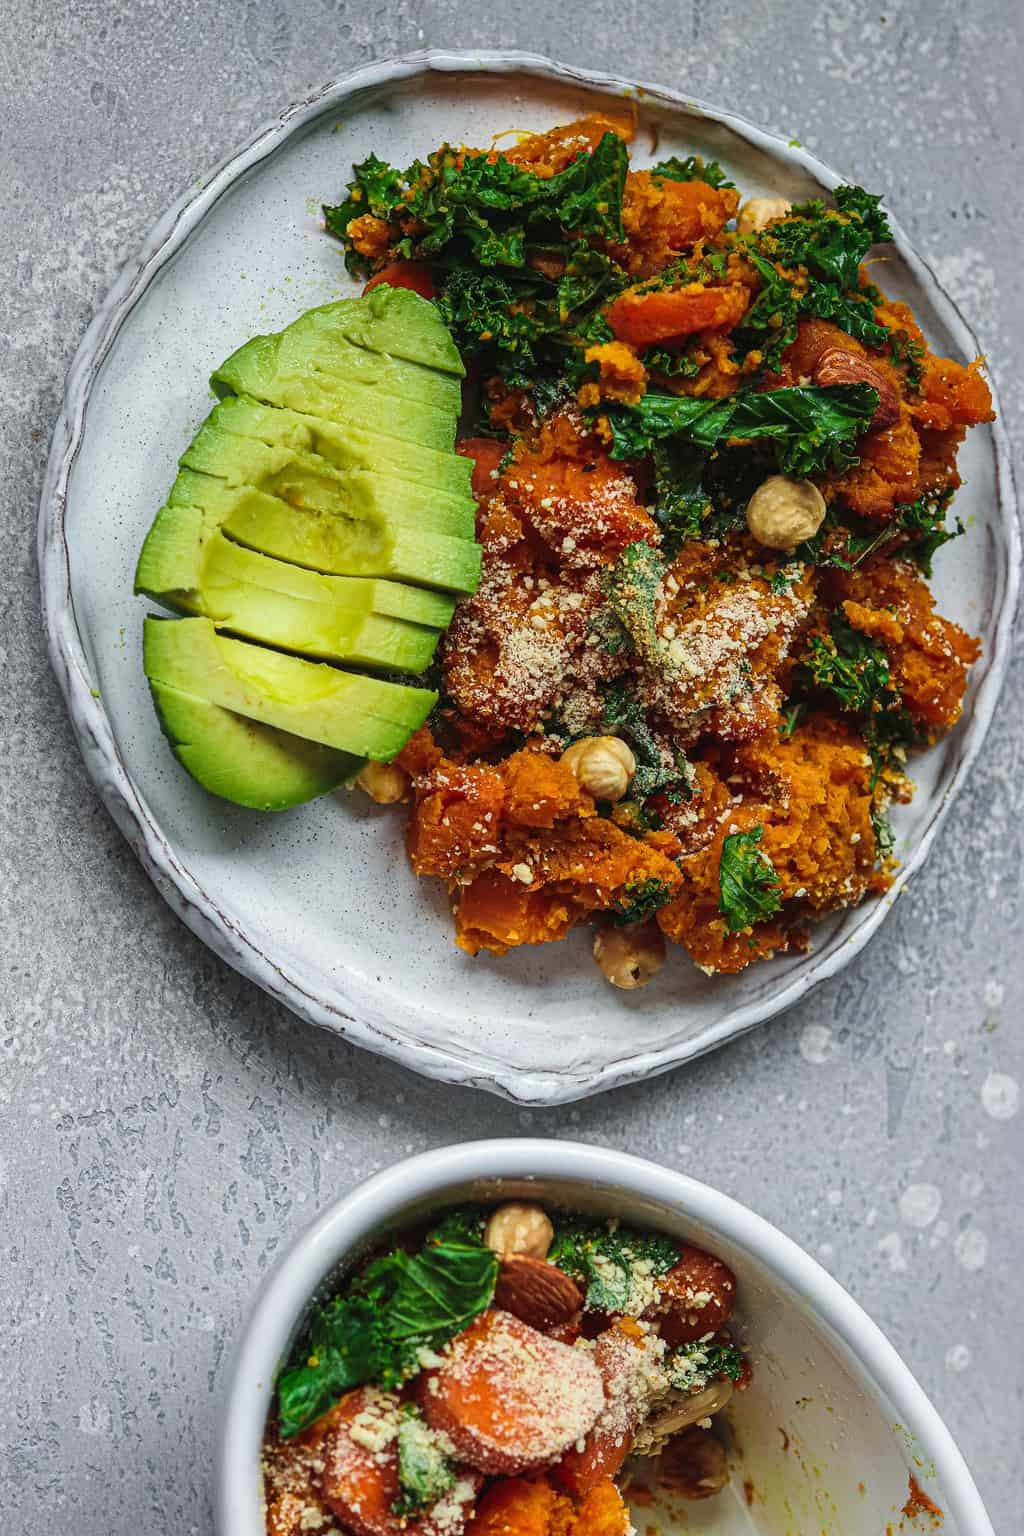 Casserole on a white plate with avocado